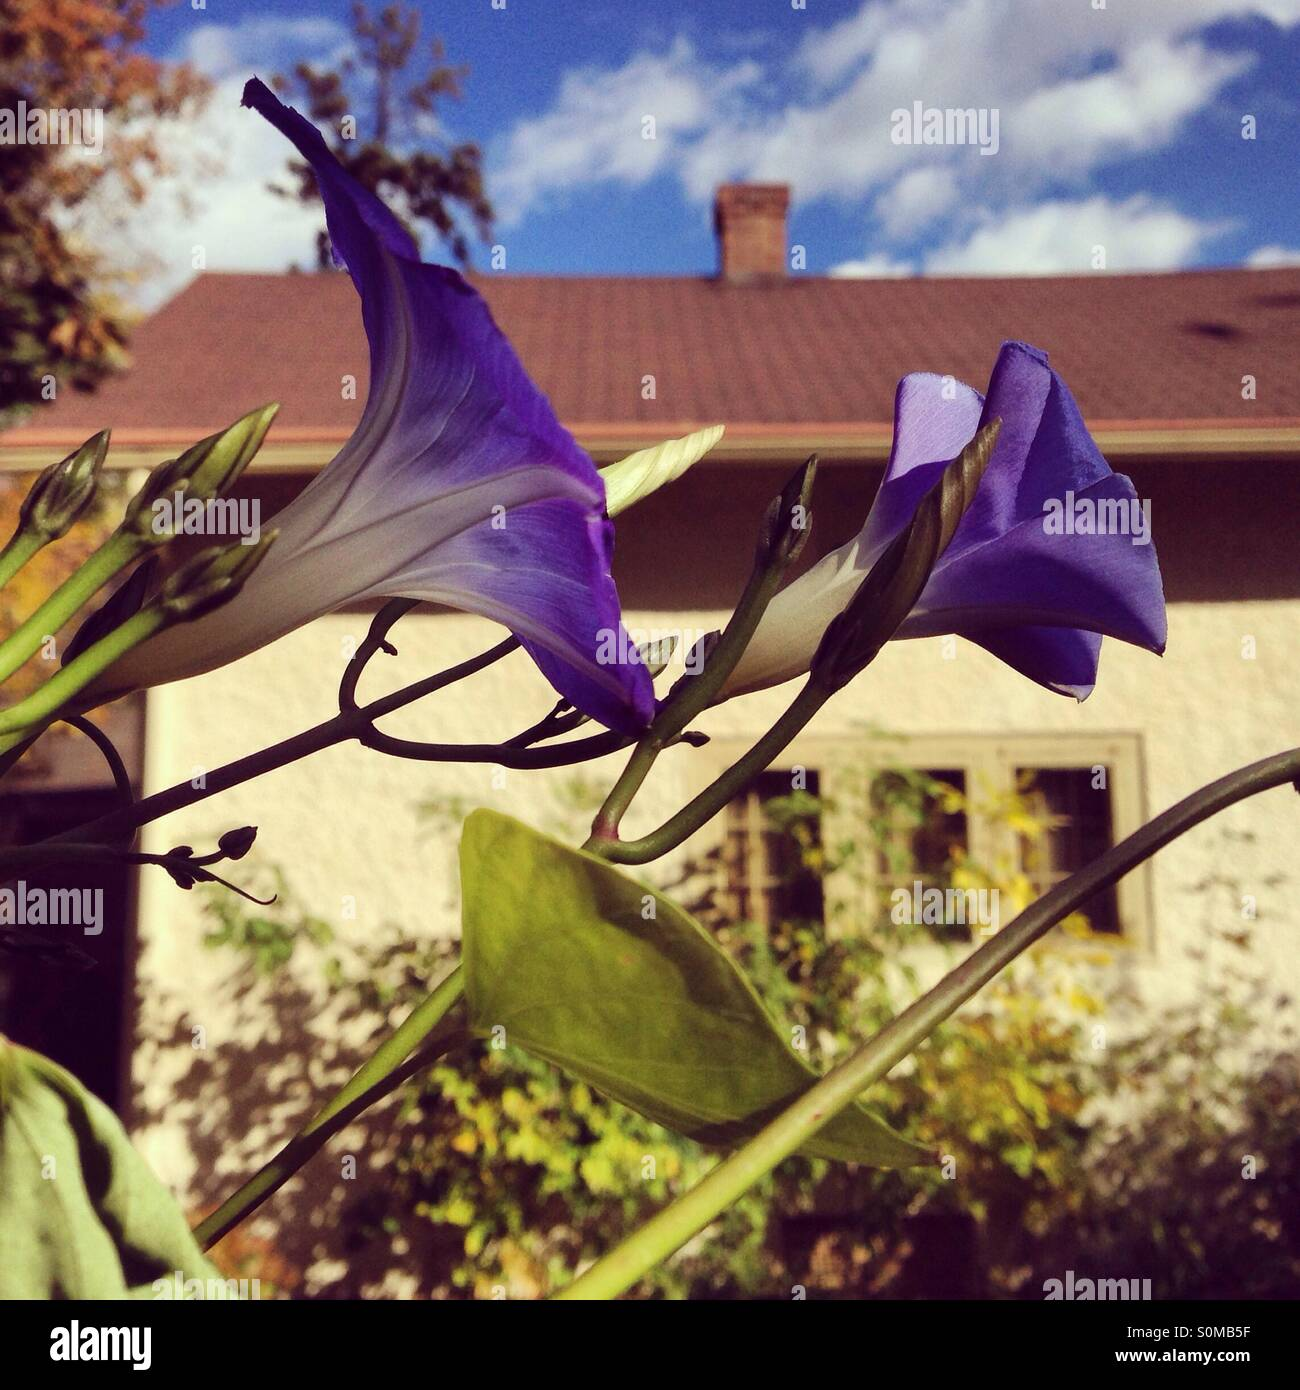 Morning glories blooming in garden - Stock Image